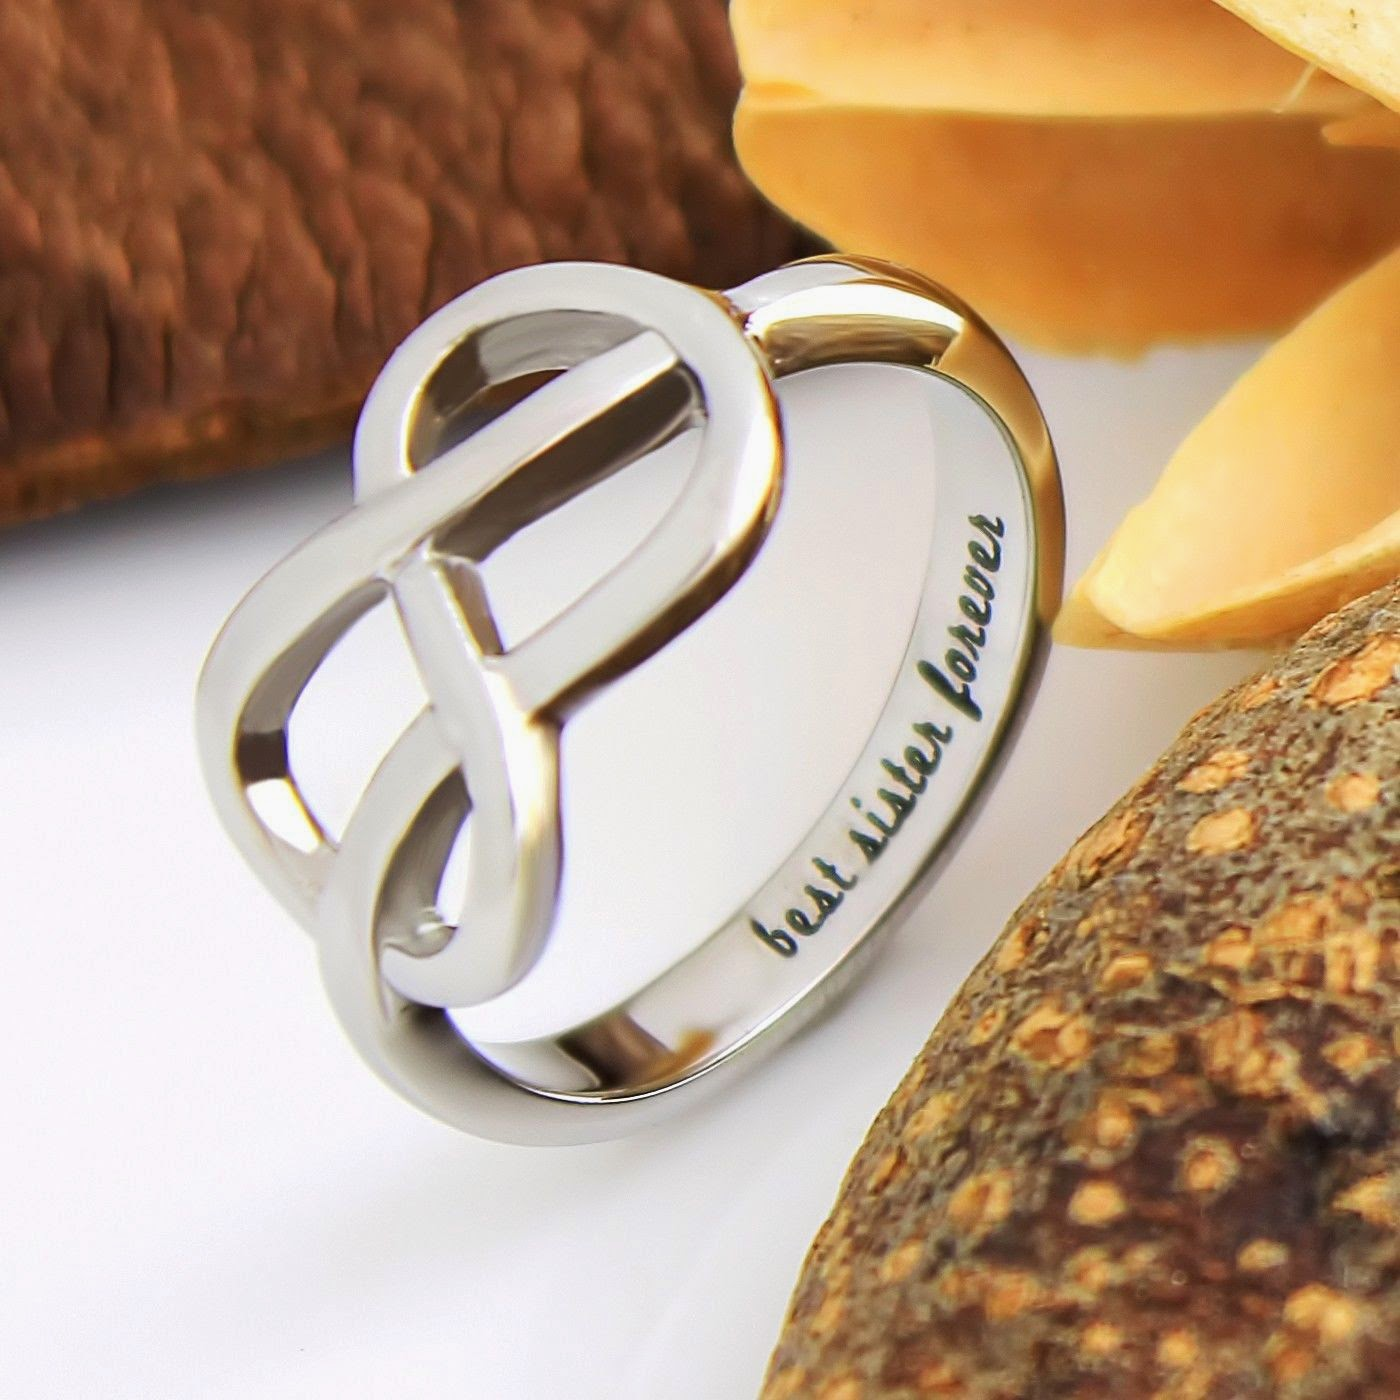 unisex ring scratches symbols silver custom woodgrain arrows promise texture sterling detailed textured products band infinity symbol engagement